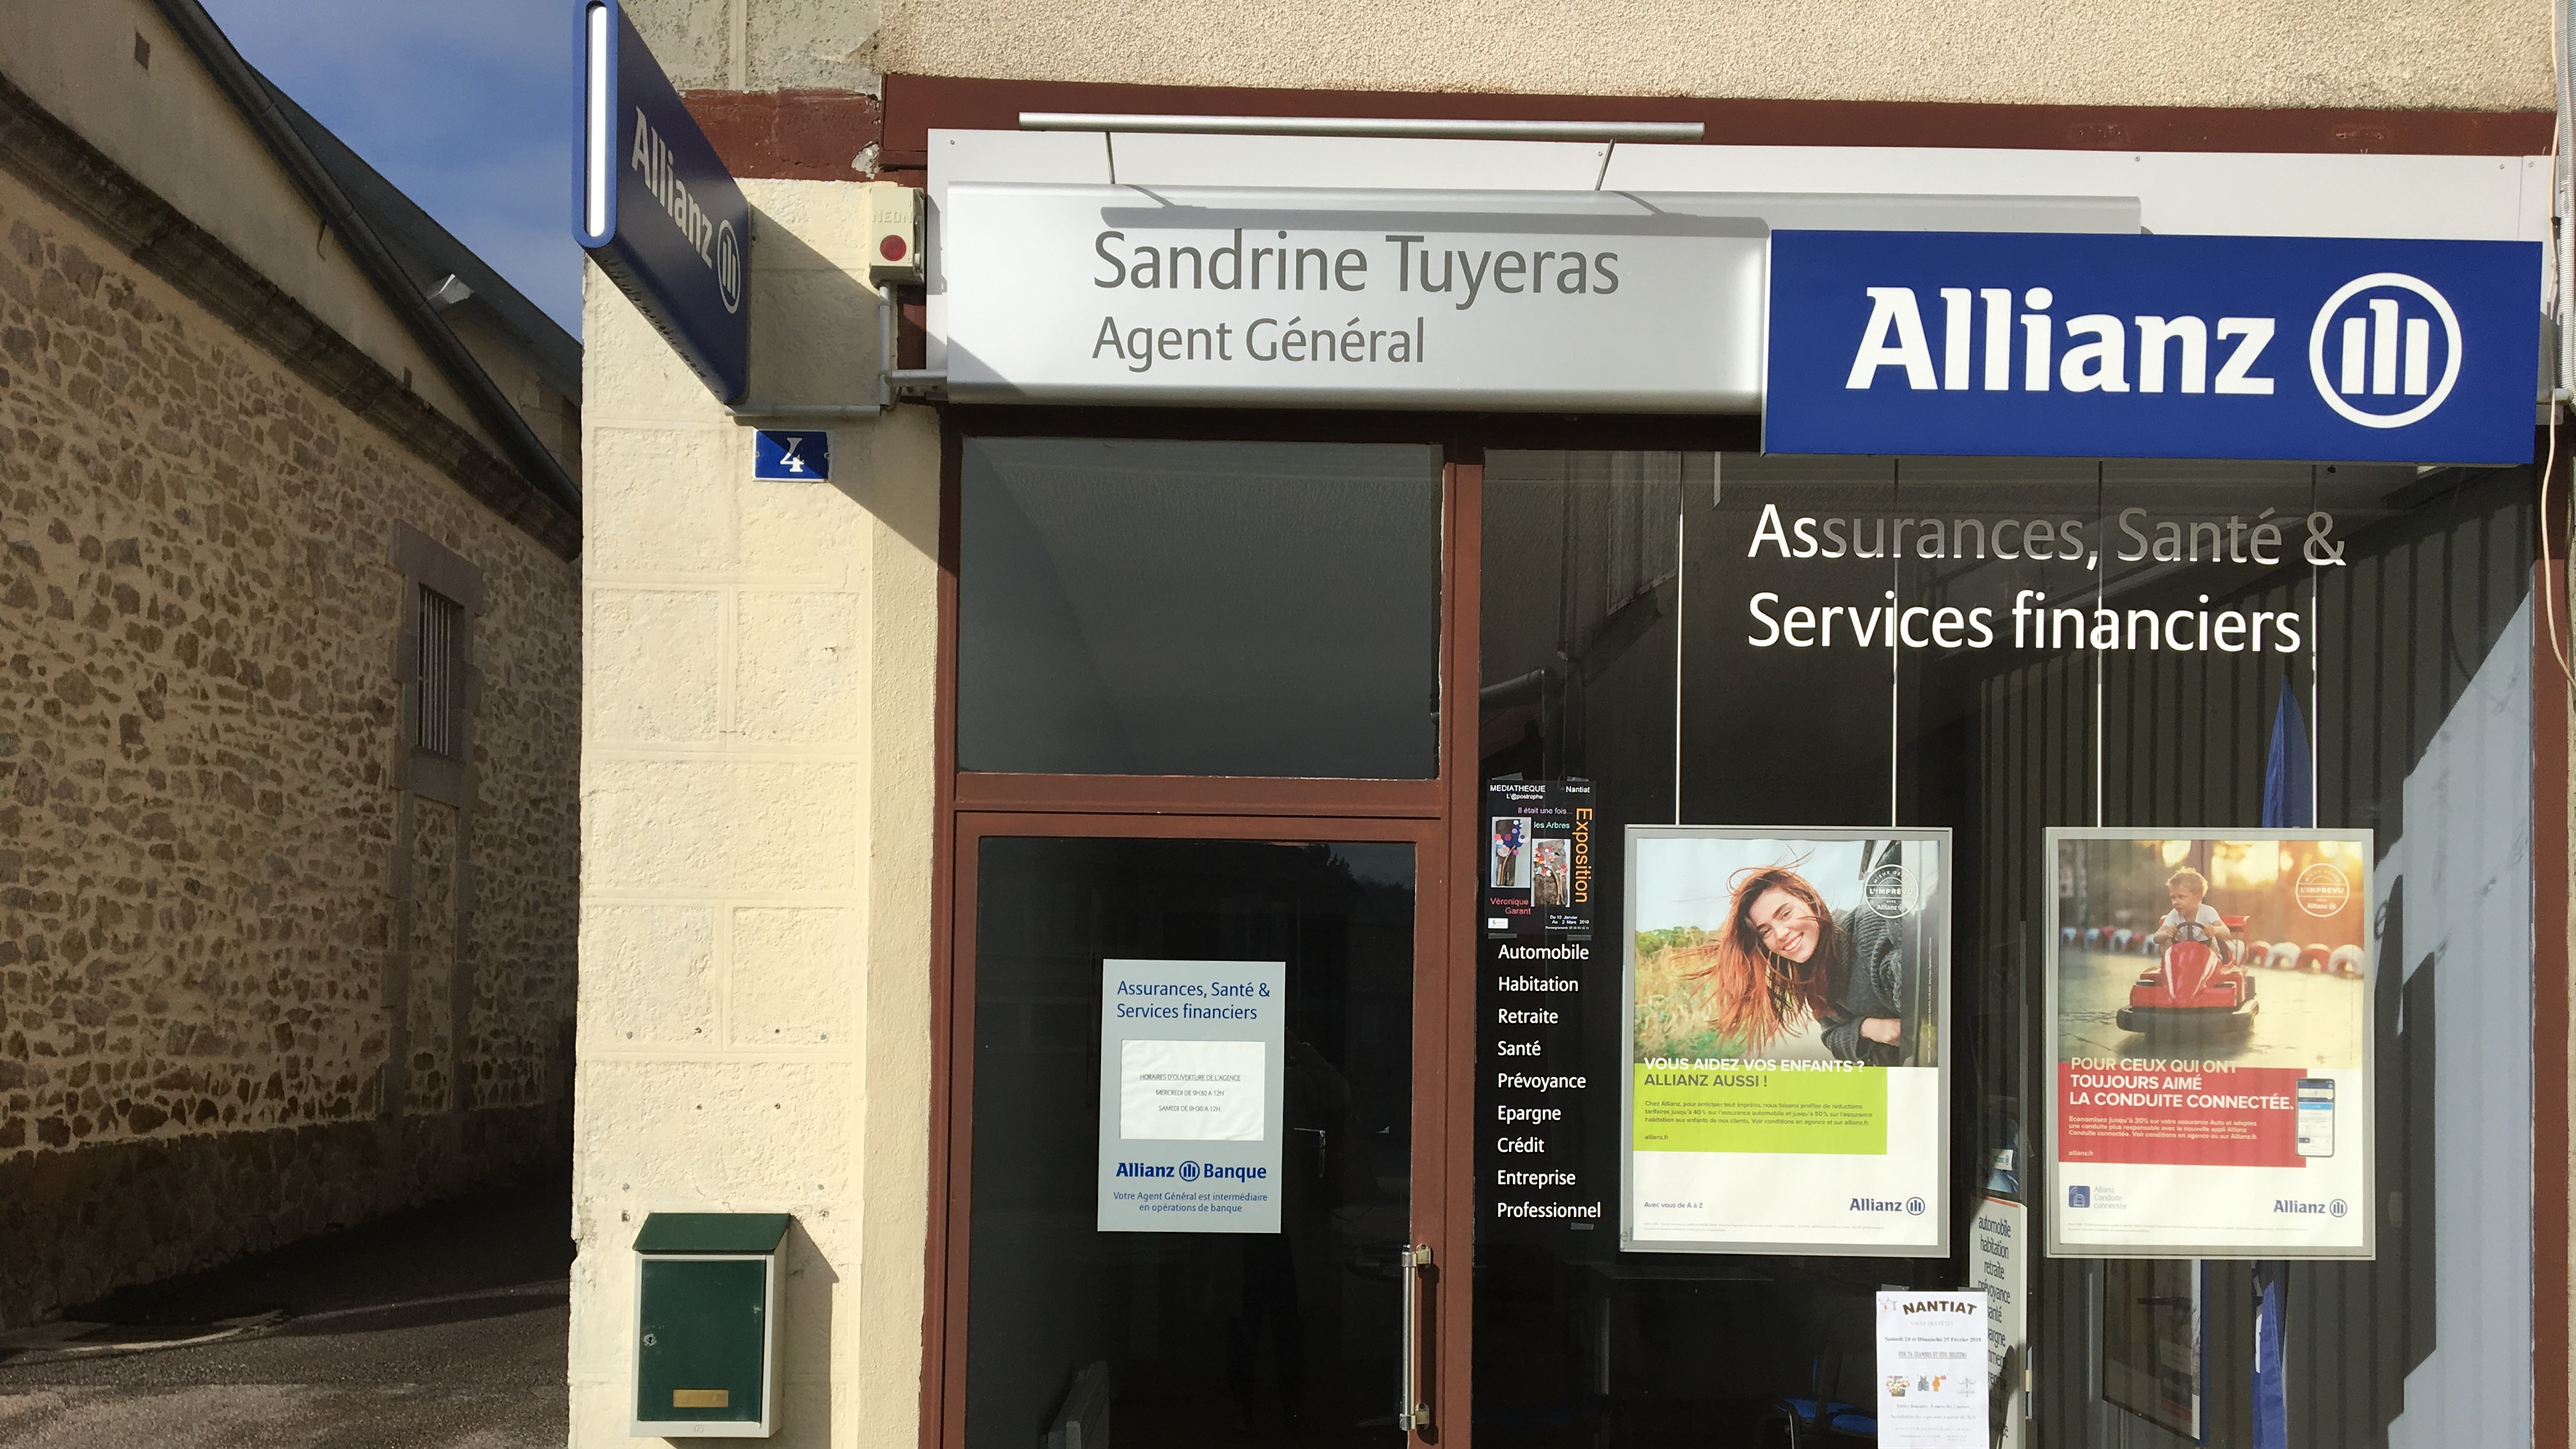 Allianz NANTIAT - Sandrine TUYERAS